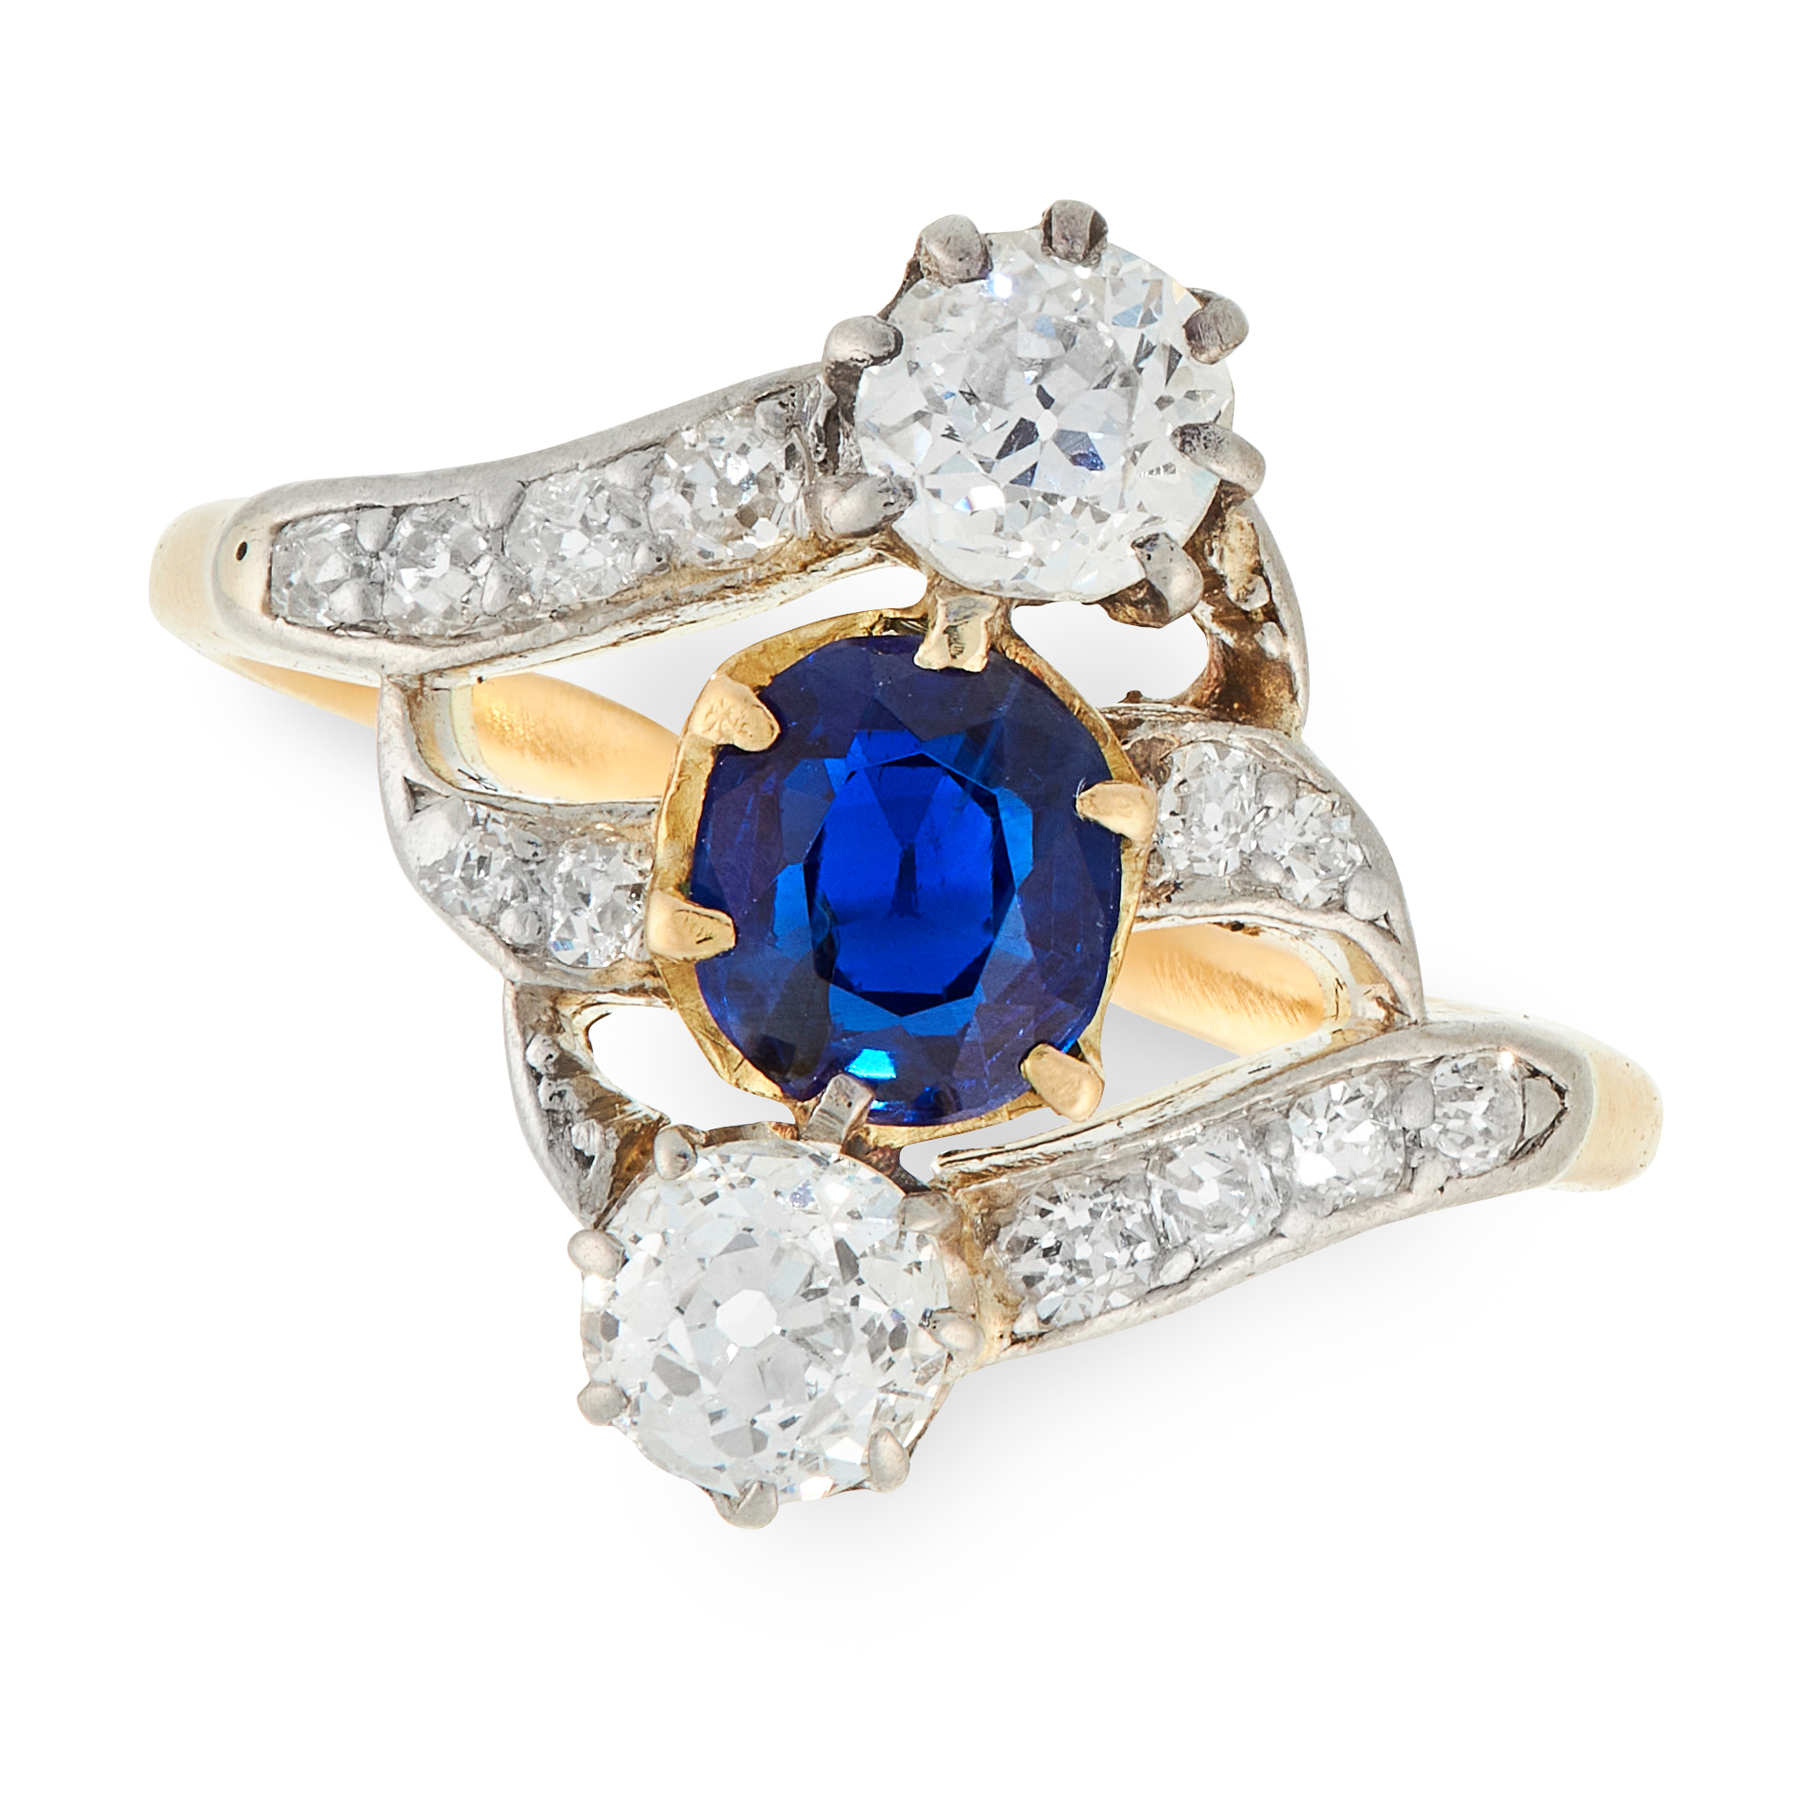 AN ANTIQUE SAPPHIRE AND DIAMOND RING in high carat yellow gold, set with a central cushion cut - Image 2 of 2